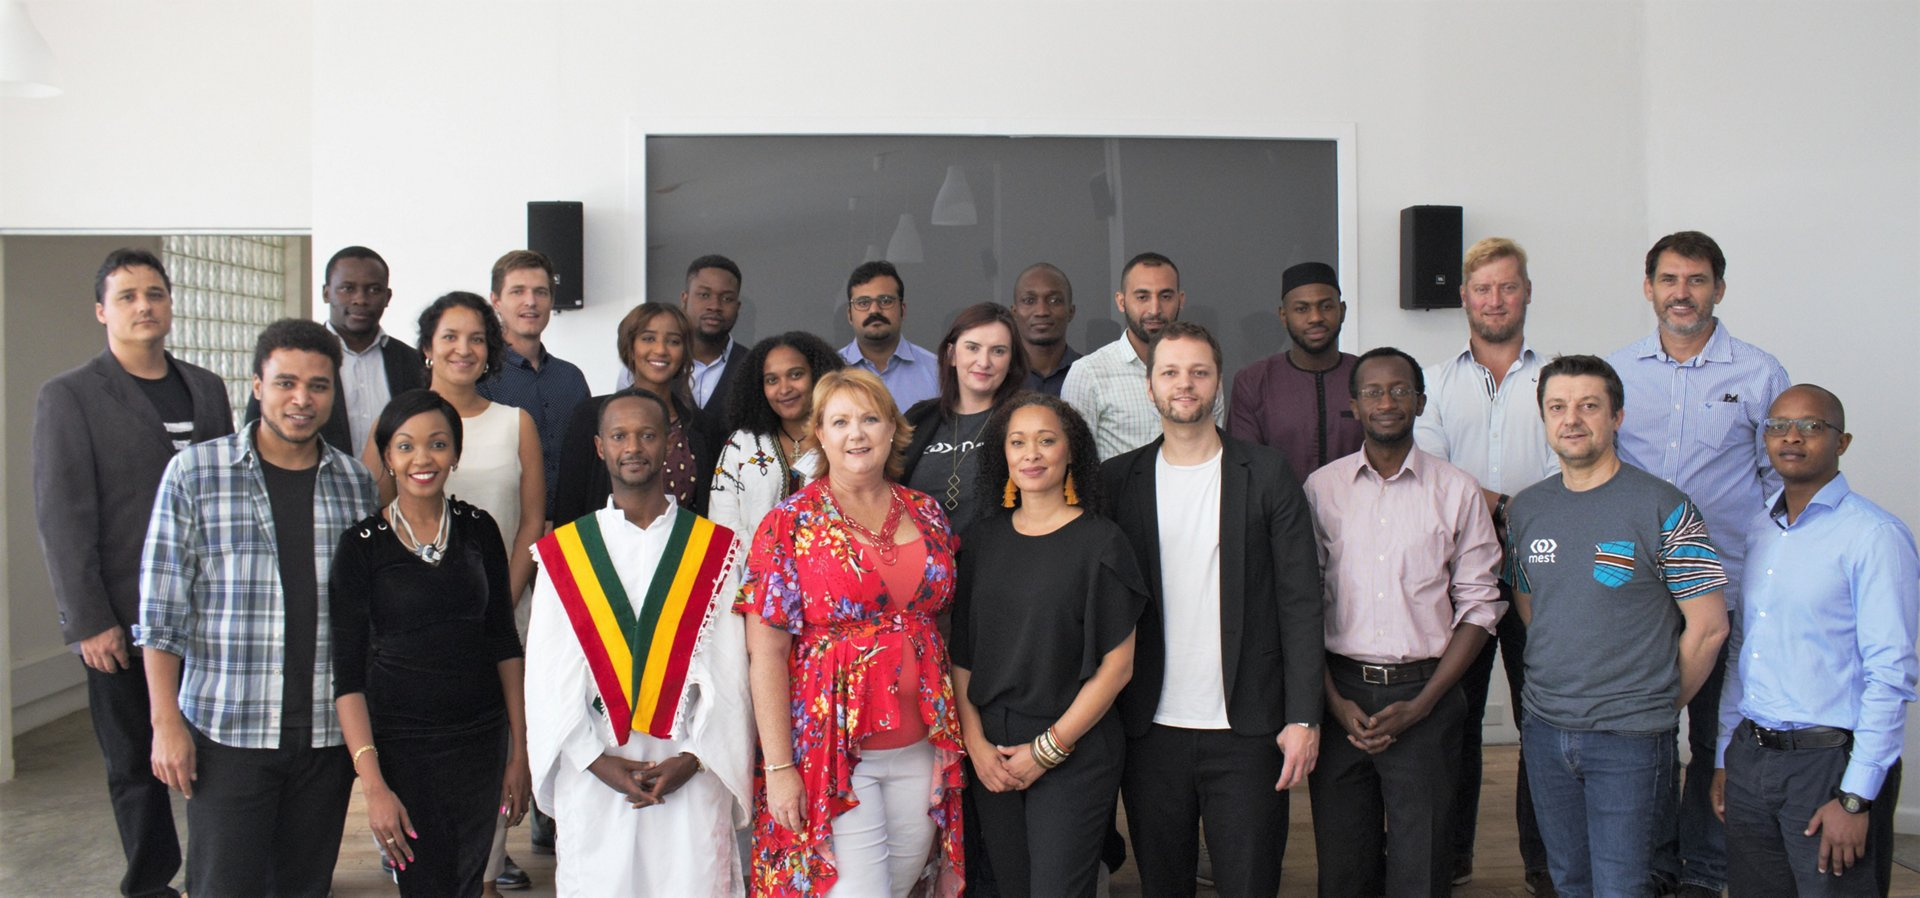 Africa's Top 10 Tech Start-Ups Selected For #Africa4Future Accelerator Programme  Nairobi, Kenya, 17 January 2019 – Airbus and the Deutsche Gesellschaft für Internationale Zusammenarbeit (GIZ) have announced the top 10 African tech start-ups that will take part in the latest Airbus Bizlab #Africa4Future accelerator programme. They were selected after an open public pitch event in front of experts, potential investors, the media and other stakeholders in Kenya's capital city